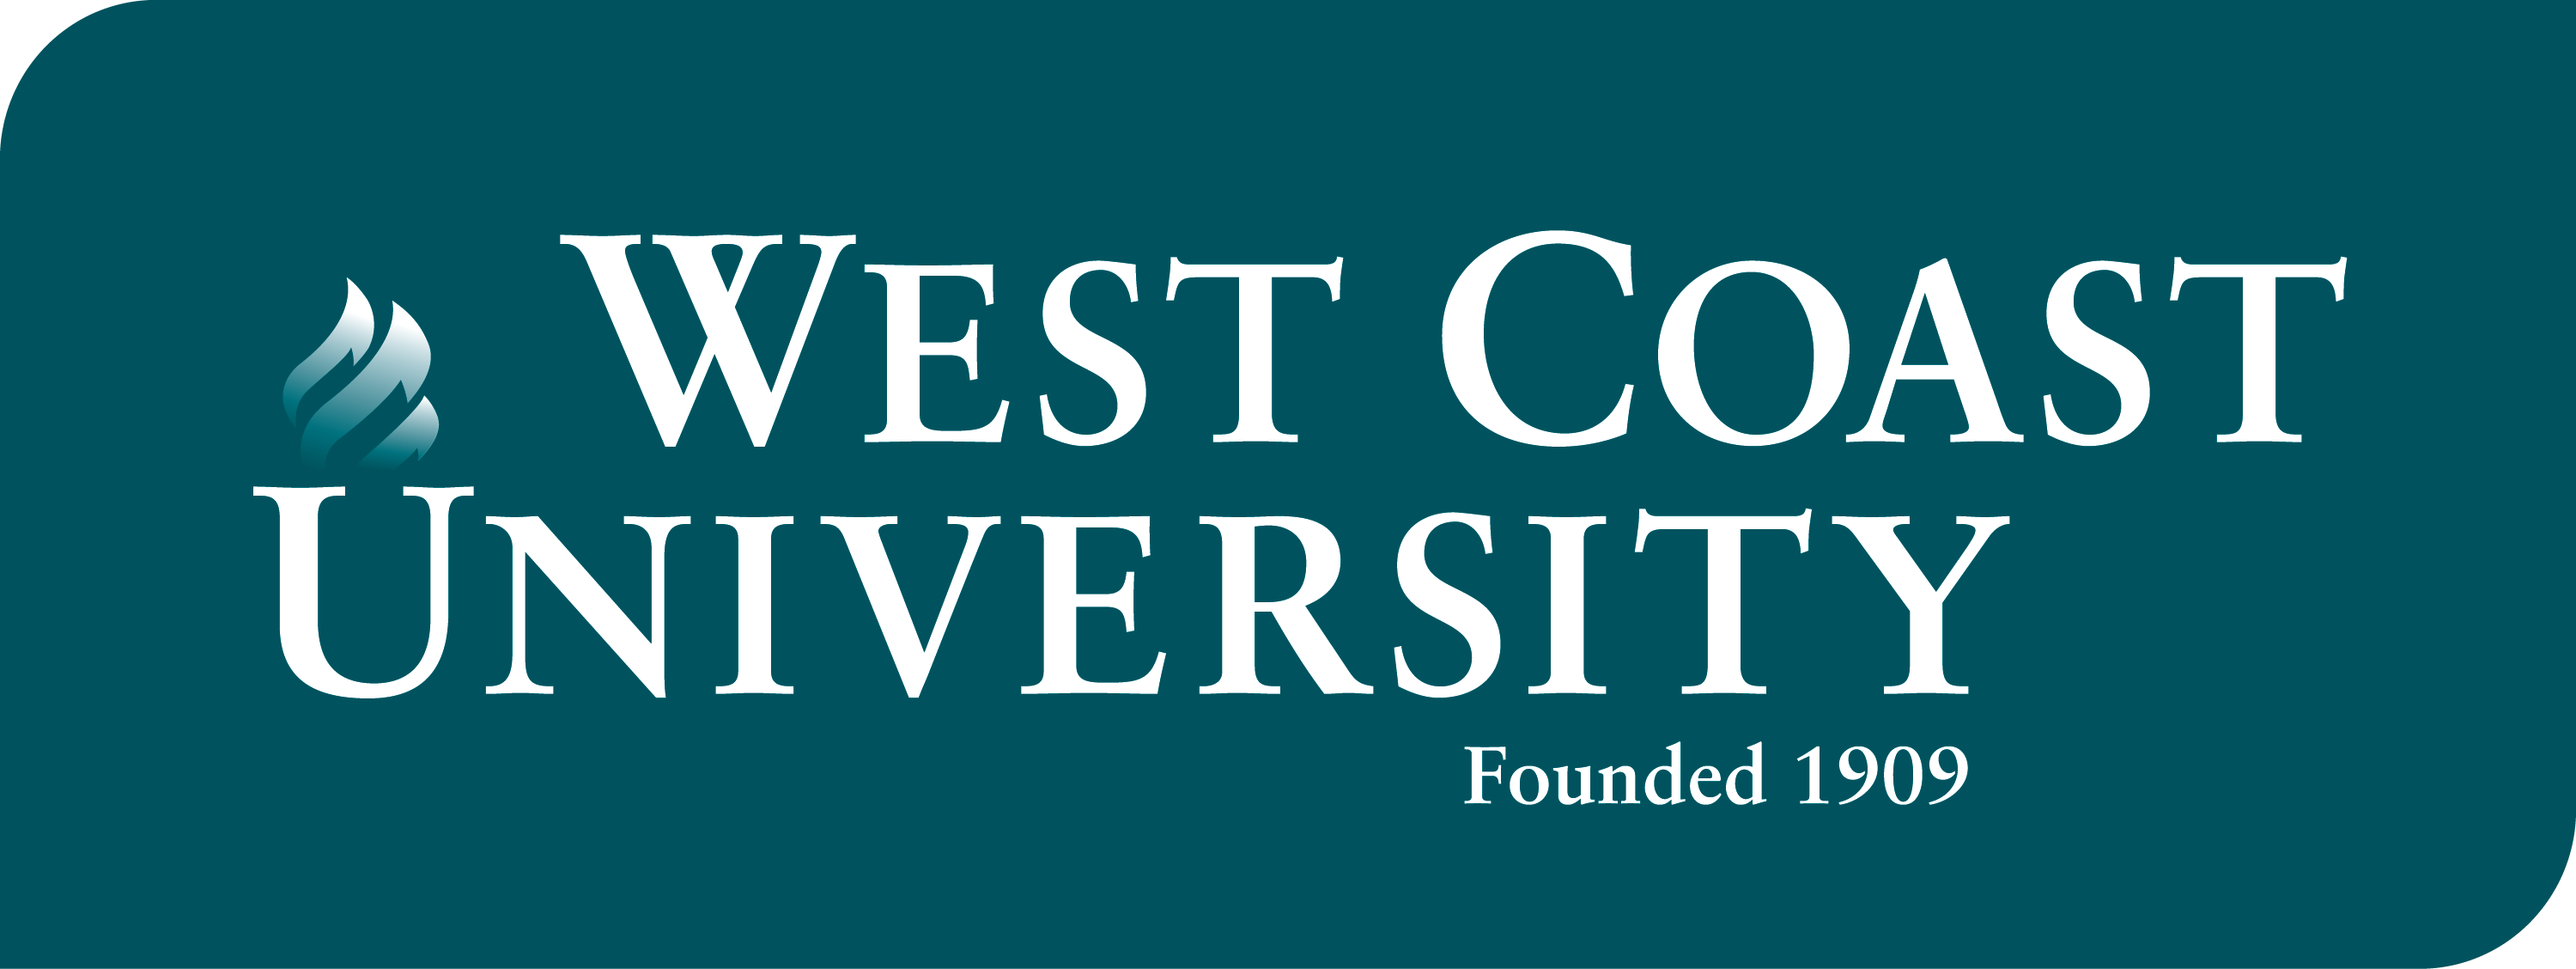 West Coast University - Los Angeles Campus